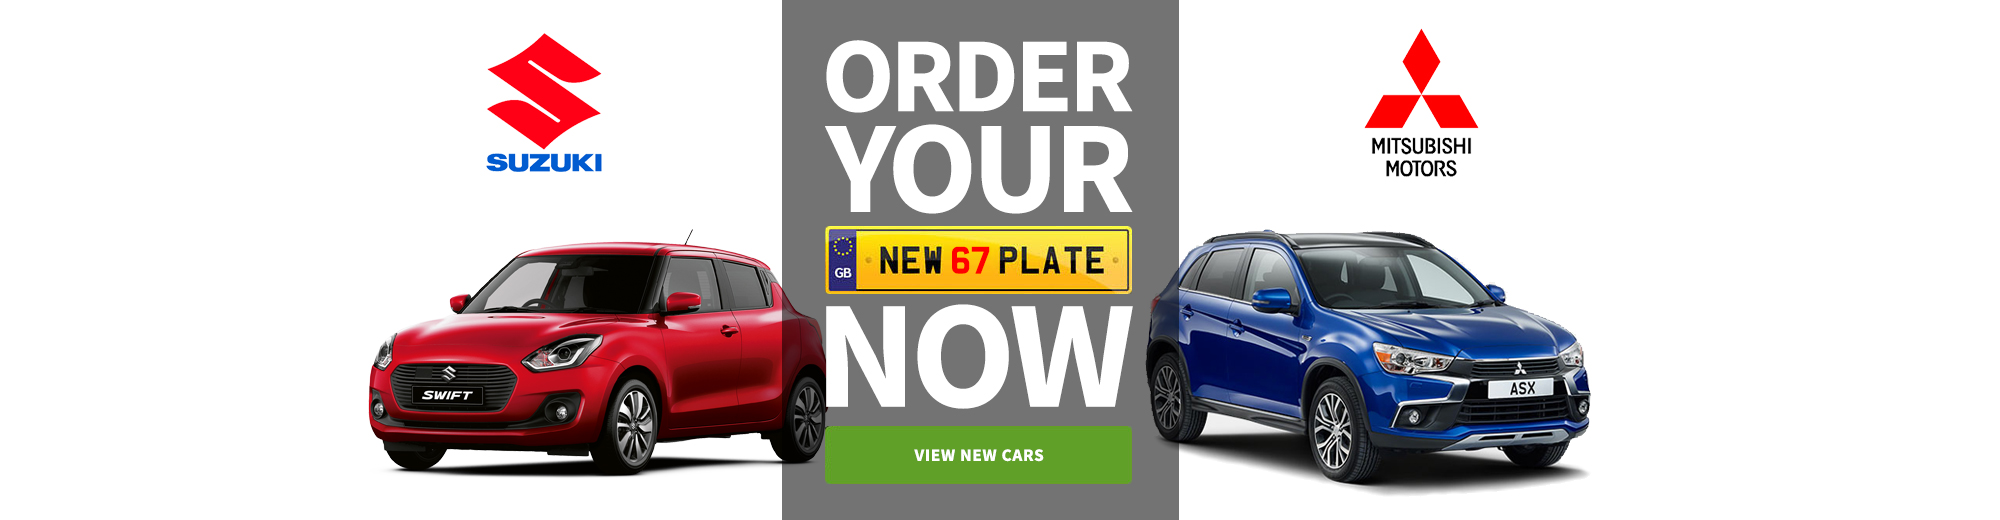 Order Your New 67 Plate Now